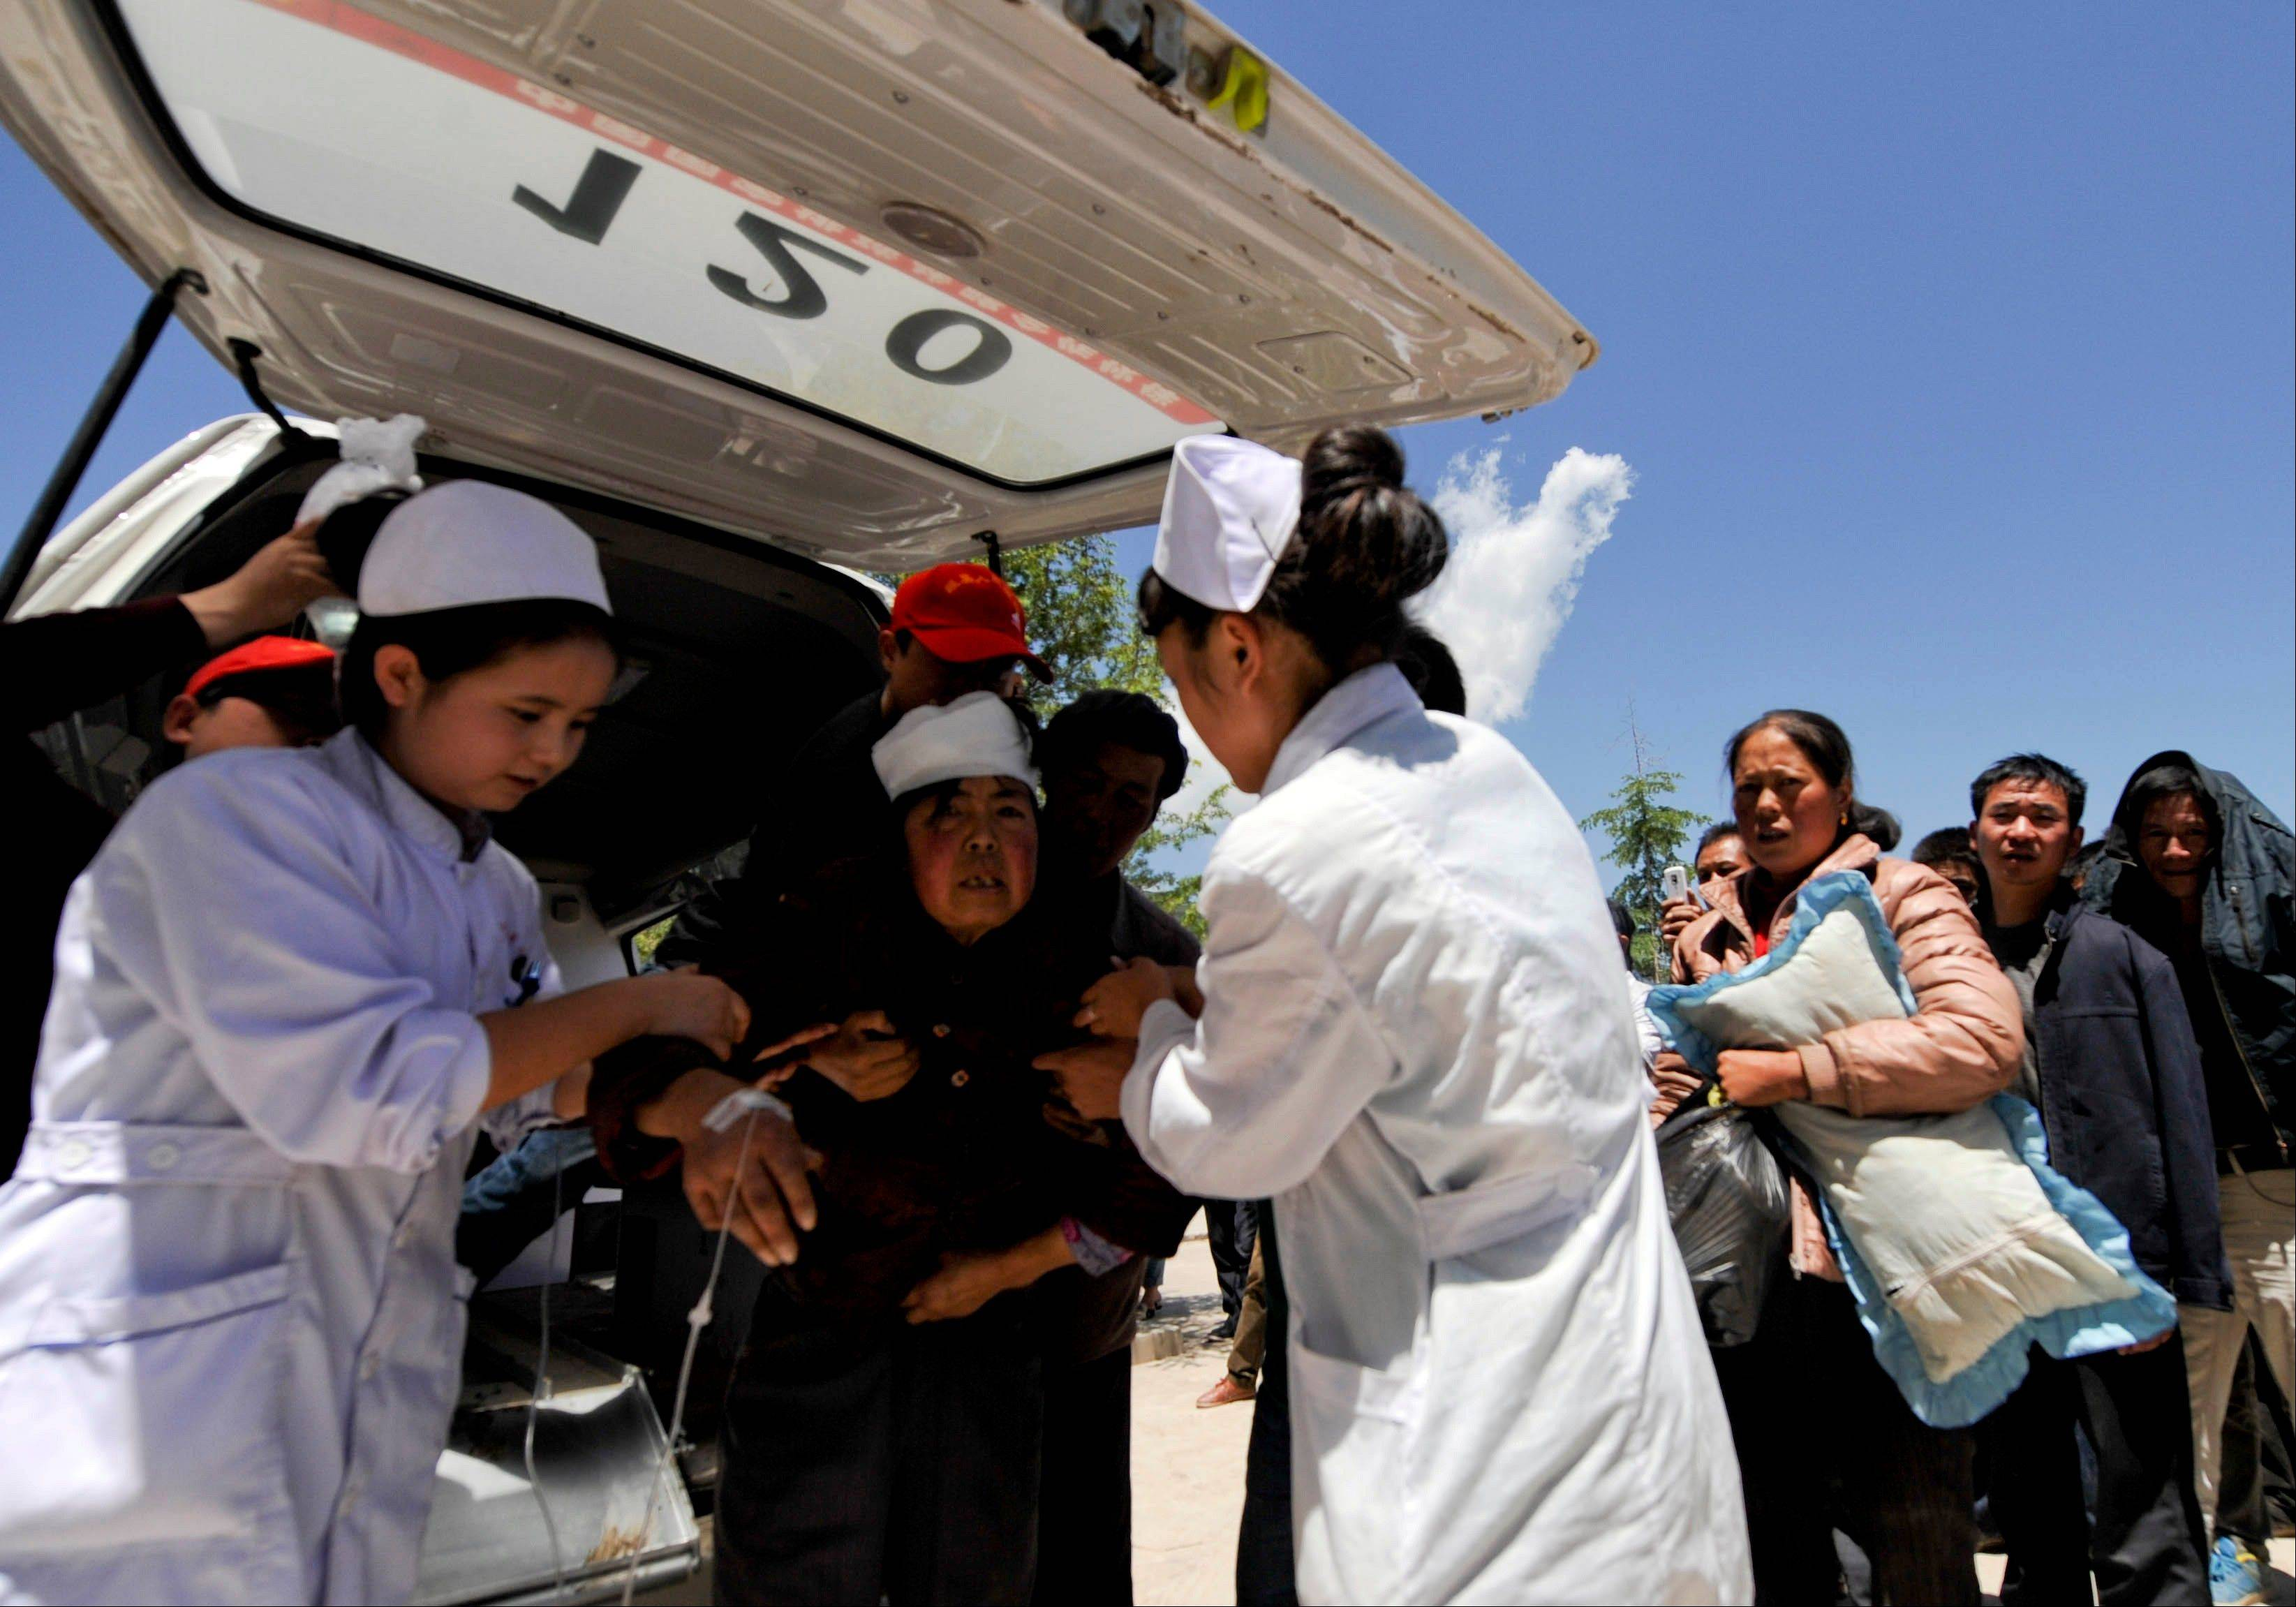 A woman injured in an earthquake is helped by medical workers in Minxian county in Dingxi city in northwest China�s Gansu province on Monday, July 22, 2013. A strong earthquake that shook an arid, hilly farming area in northwest China sparked landslides and destroyed or damaged thousands of brick-and-mud homes Monday, killing at least 94 people and injuring more than 1,000, the government said.